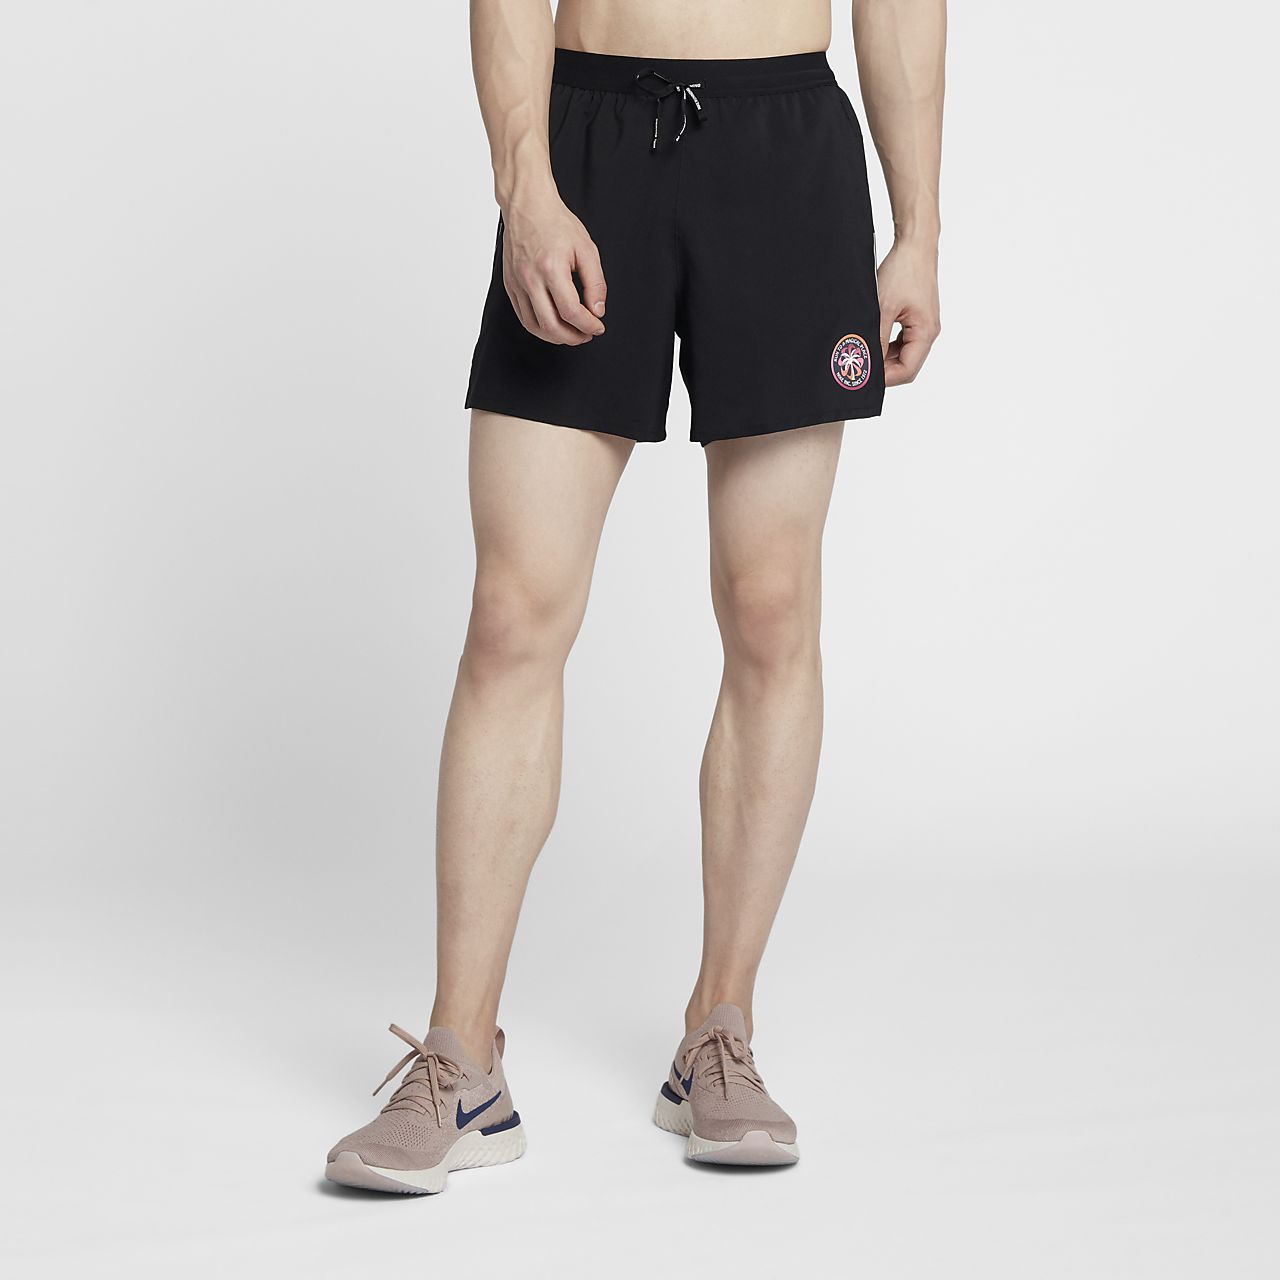 Nike Flex Stride Men's 13cm approx. Lined Running Shorts